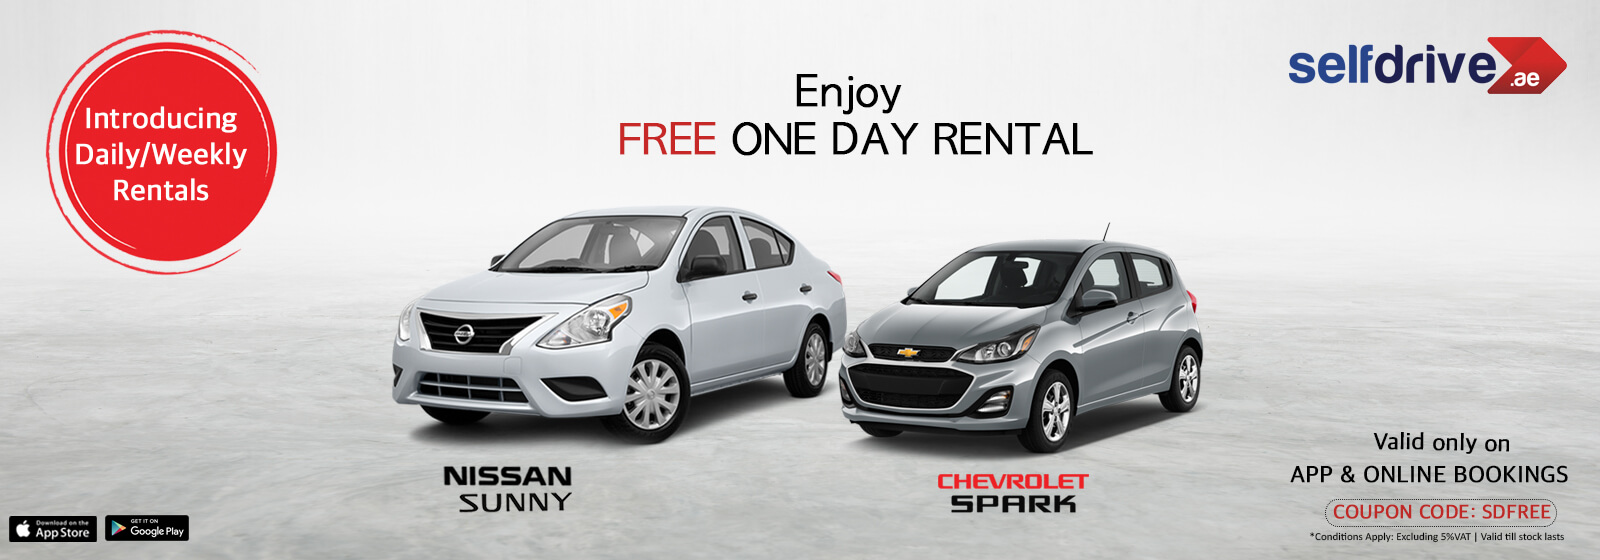 Introducing Daily/Weekly Rentals